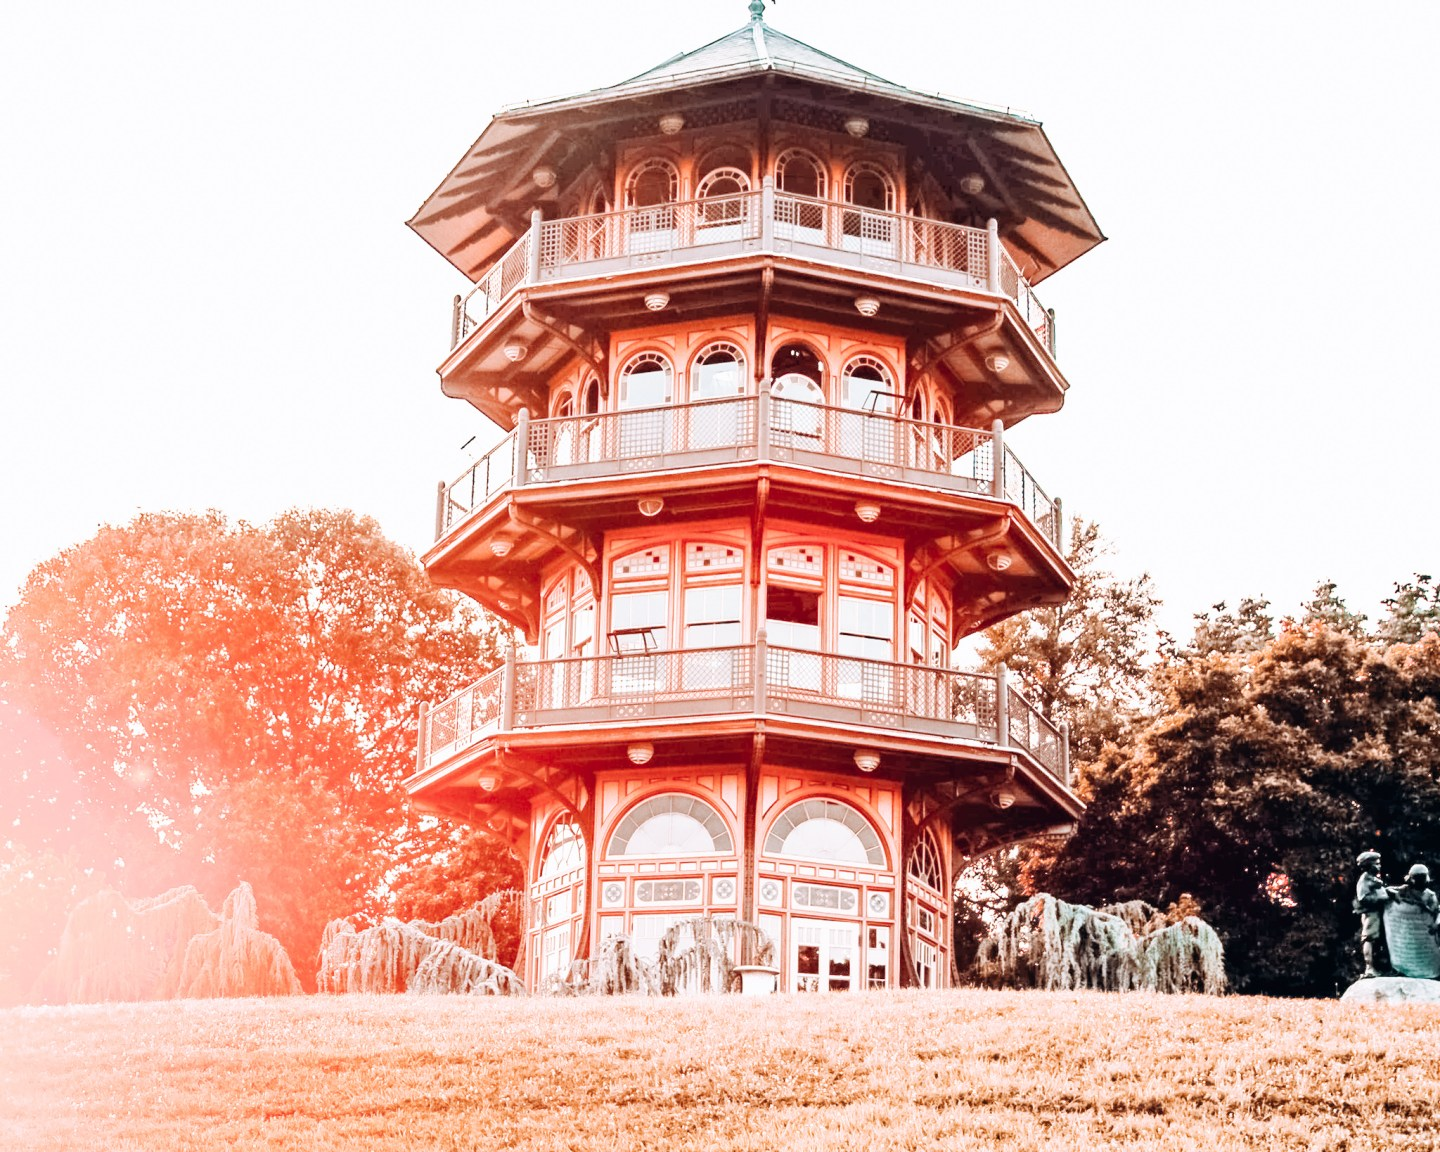 Patterson Park Pagoda in Baltimore